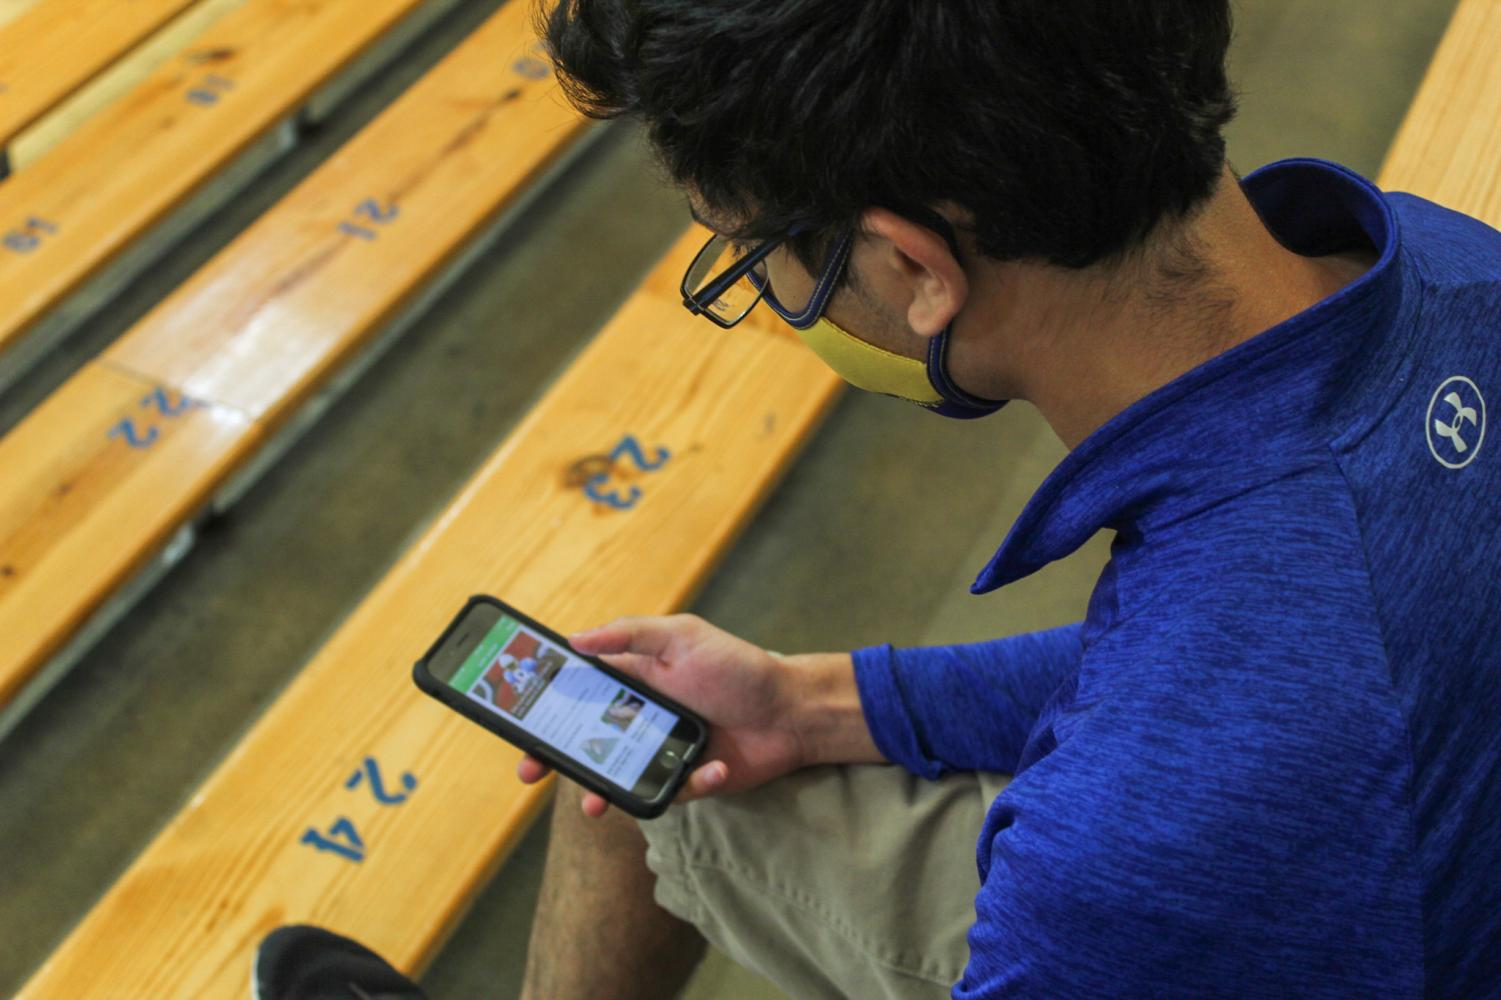 Senior Neal Joshi plays fantasy football on his phone while sitting in the varsity gym. Fantasy football has greatly increased popularity over the past few years and has caused more interest in the NFL.